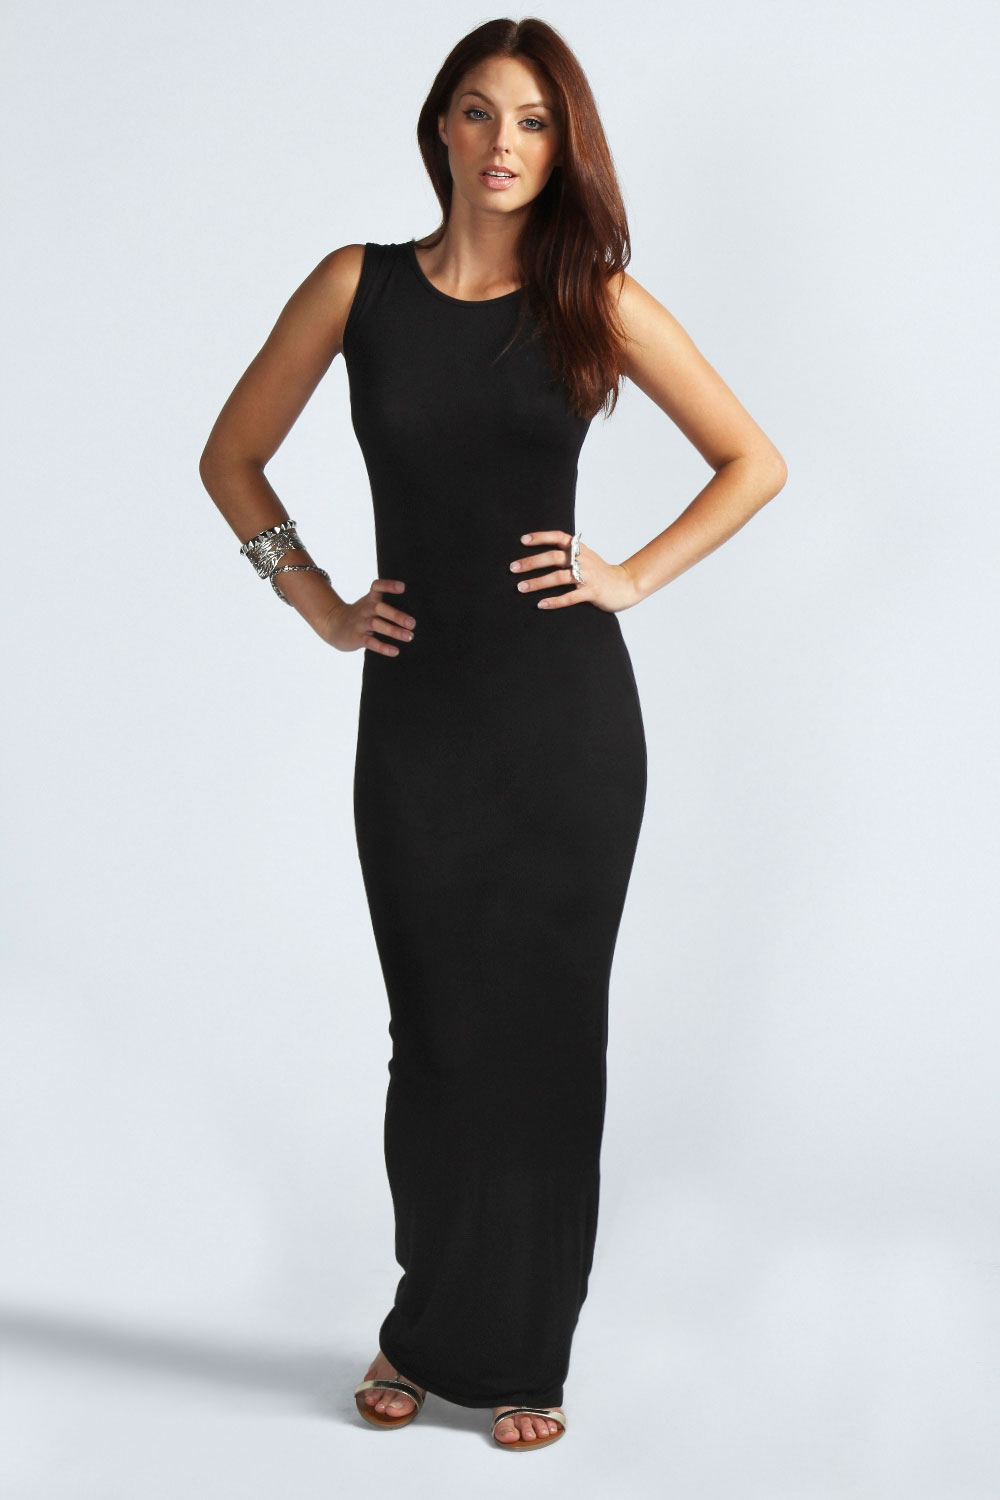 Long Black Sleeveless Maxi Dress Photo Album - Reikian